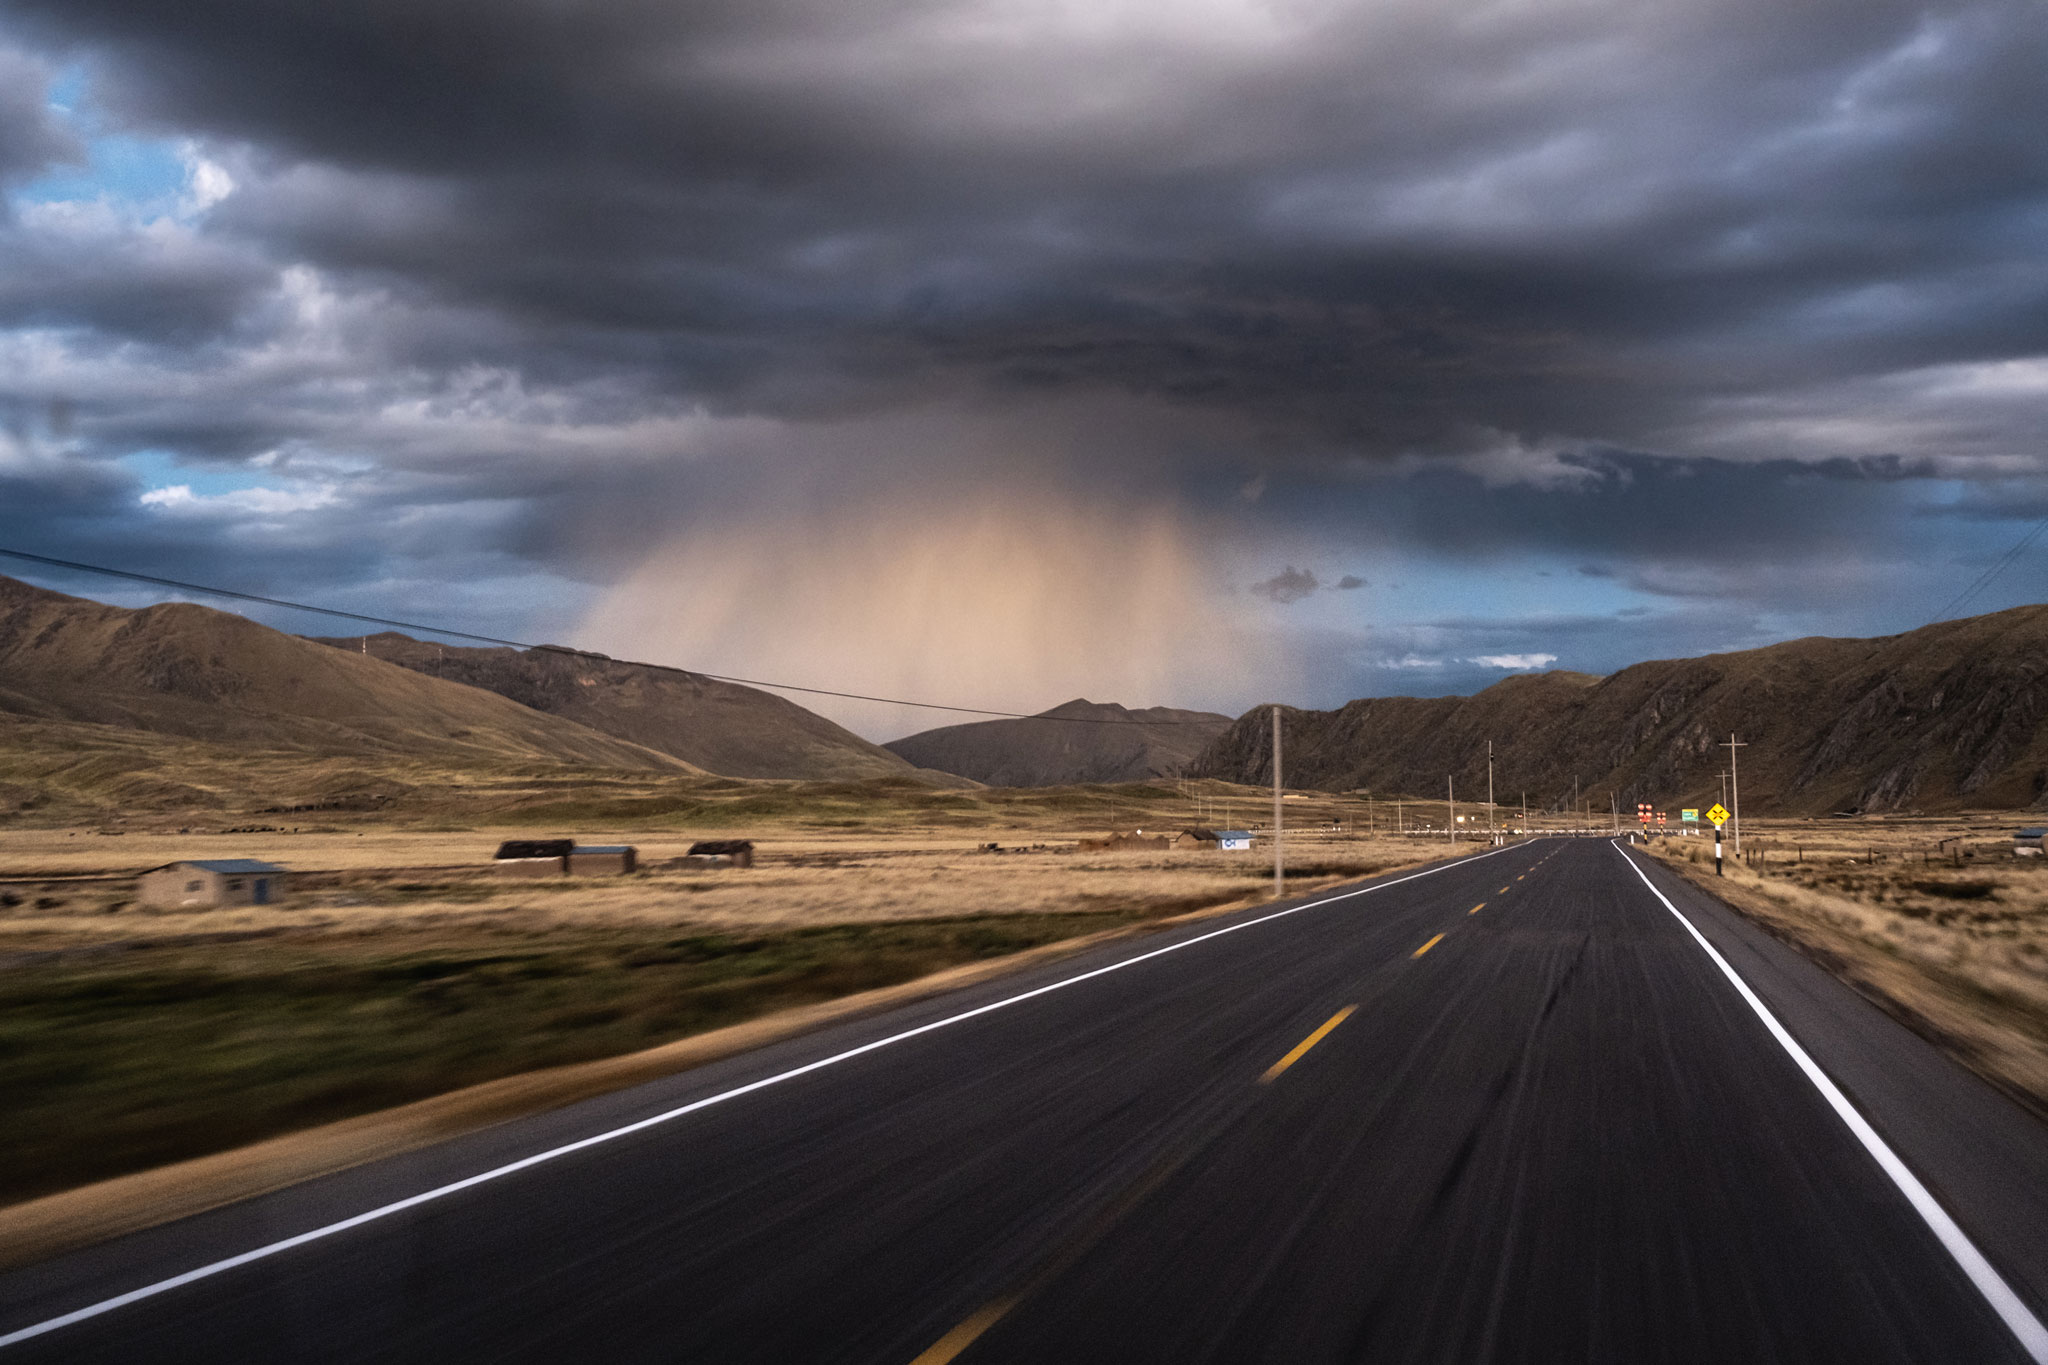 STORM ON THE ROAD - PERUVIAN ANDES